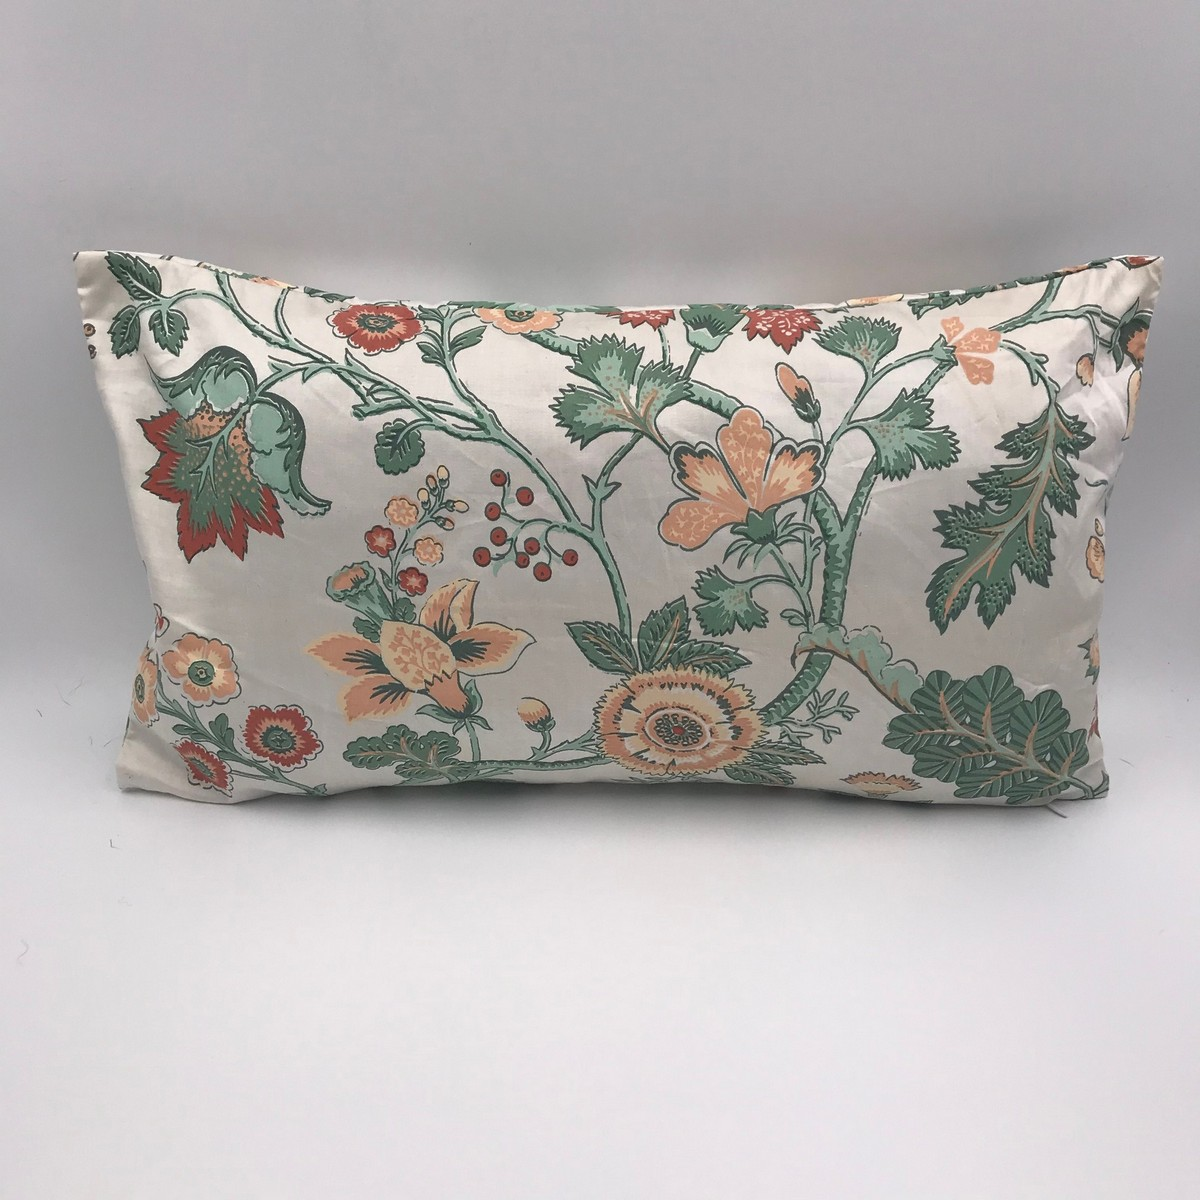 Buy Handmade floral print pillow vintage style, Сotton pillow style 60s, Сraftsman's pillow, Hand made decorative pillow